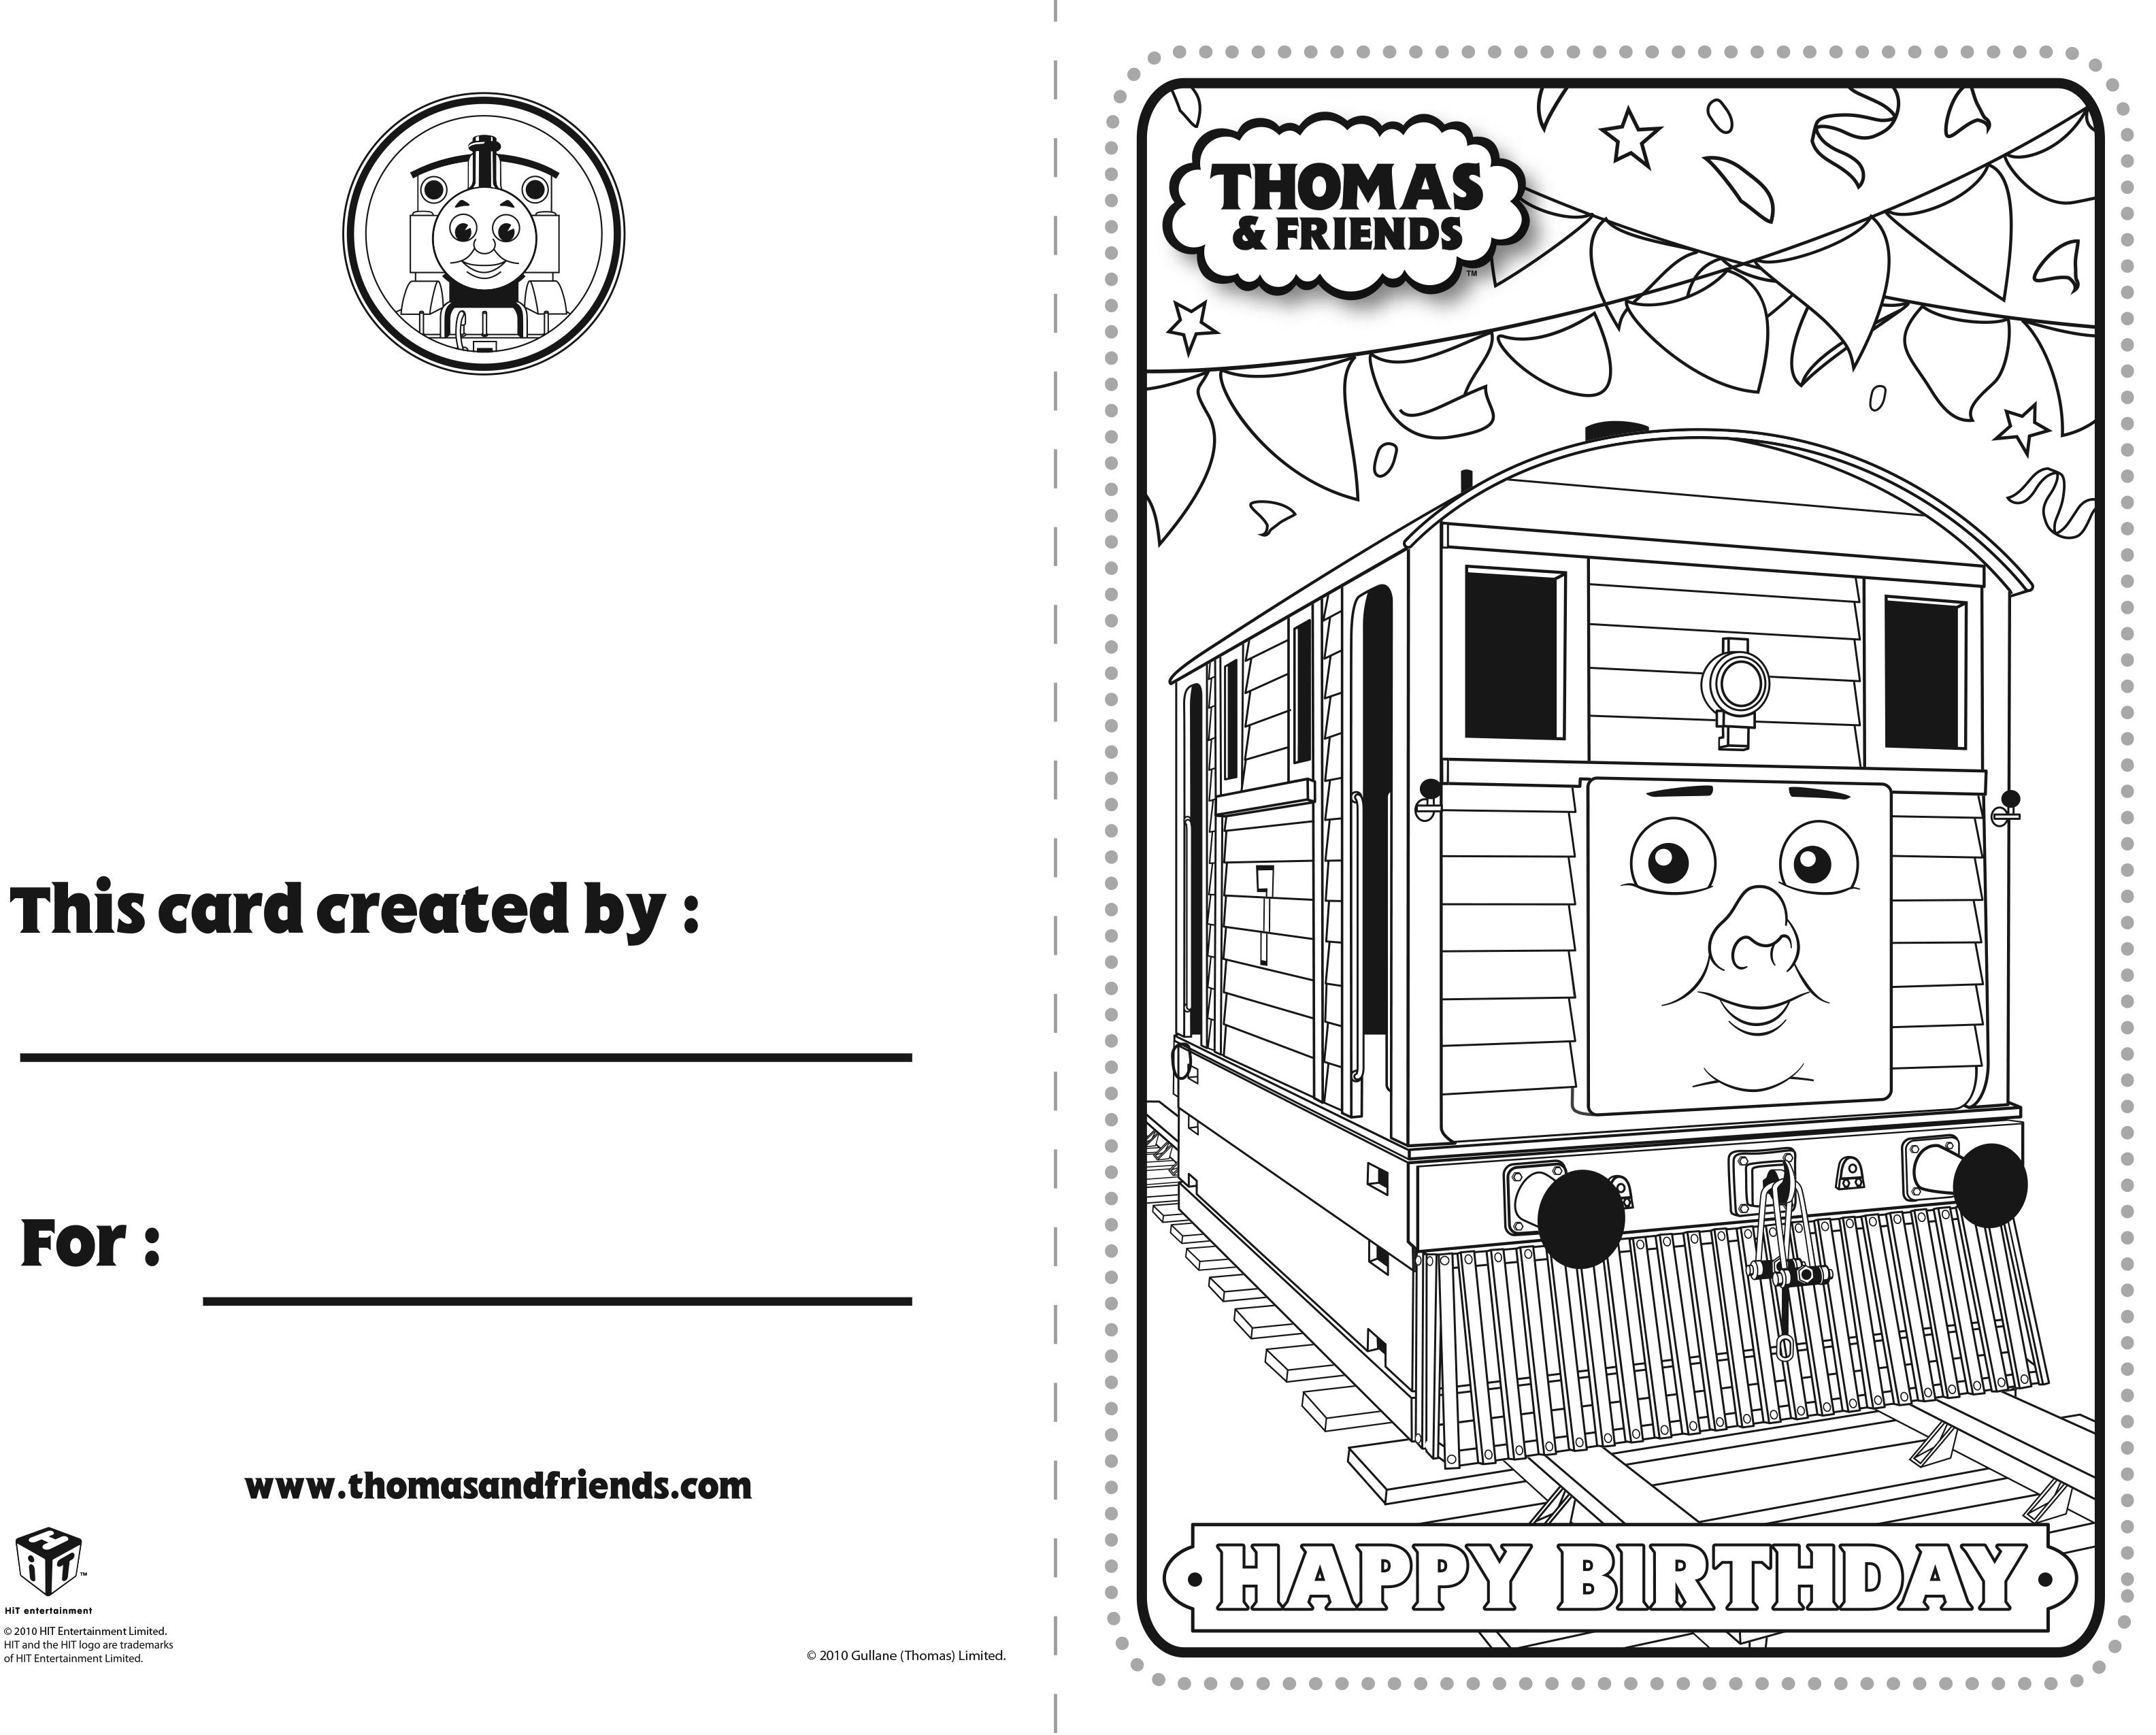 Thomas And Friends Birthday Card Toby Thomasandfriends Thomasthetankengine Birthdayc Thomas And Friends Birthday Cards For Friends Birthday Card Printable